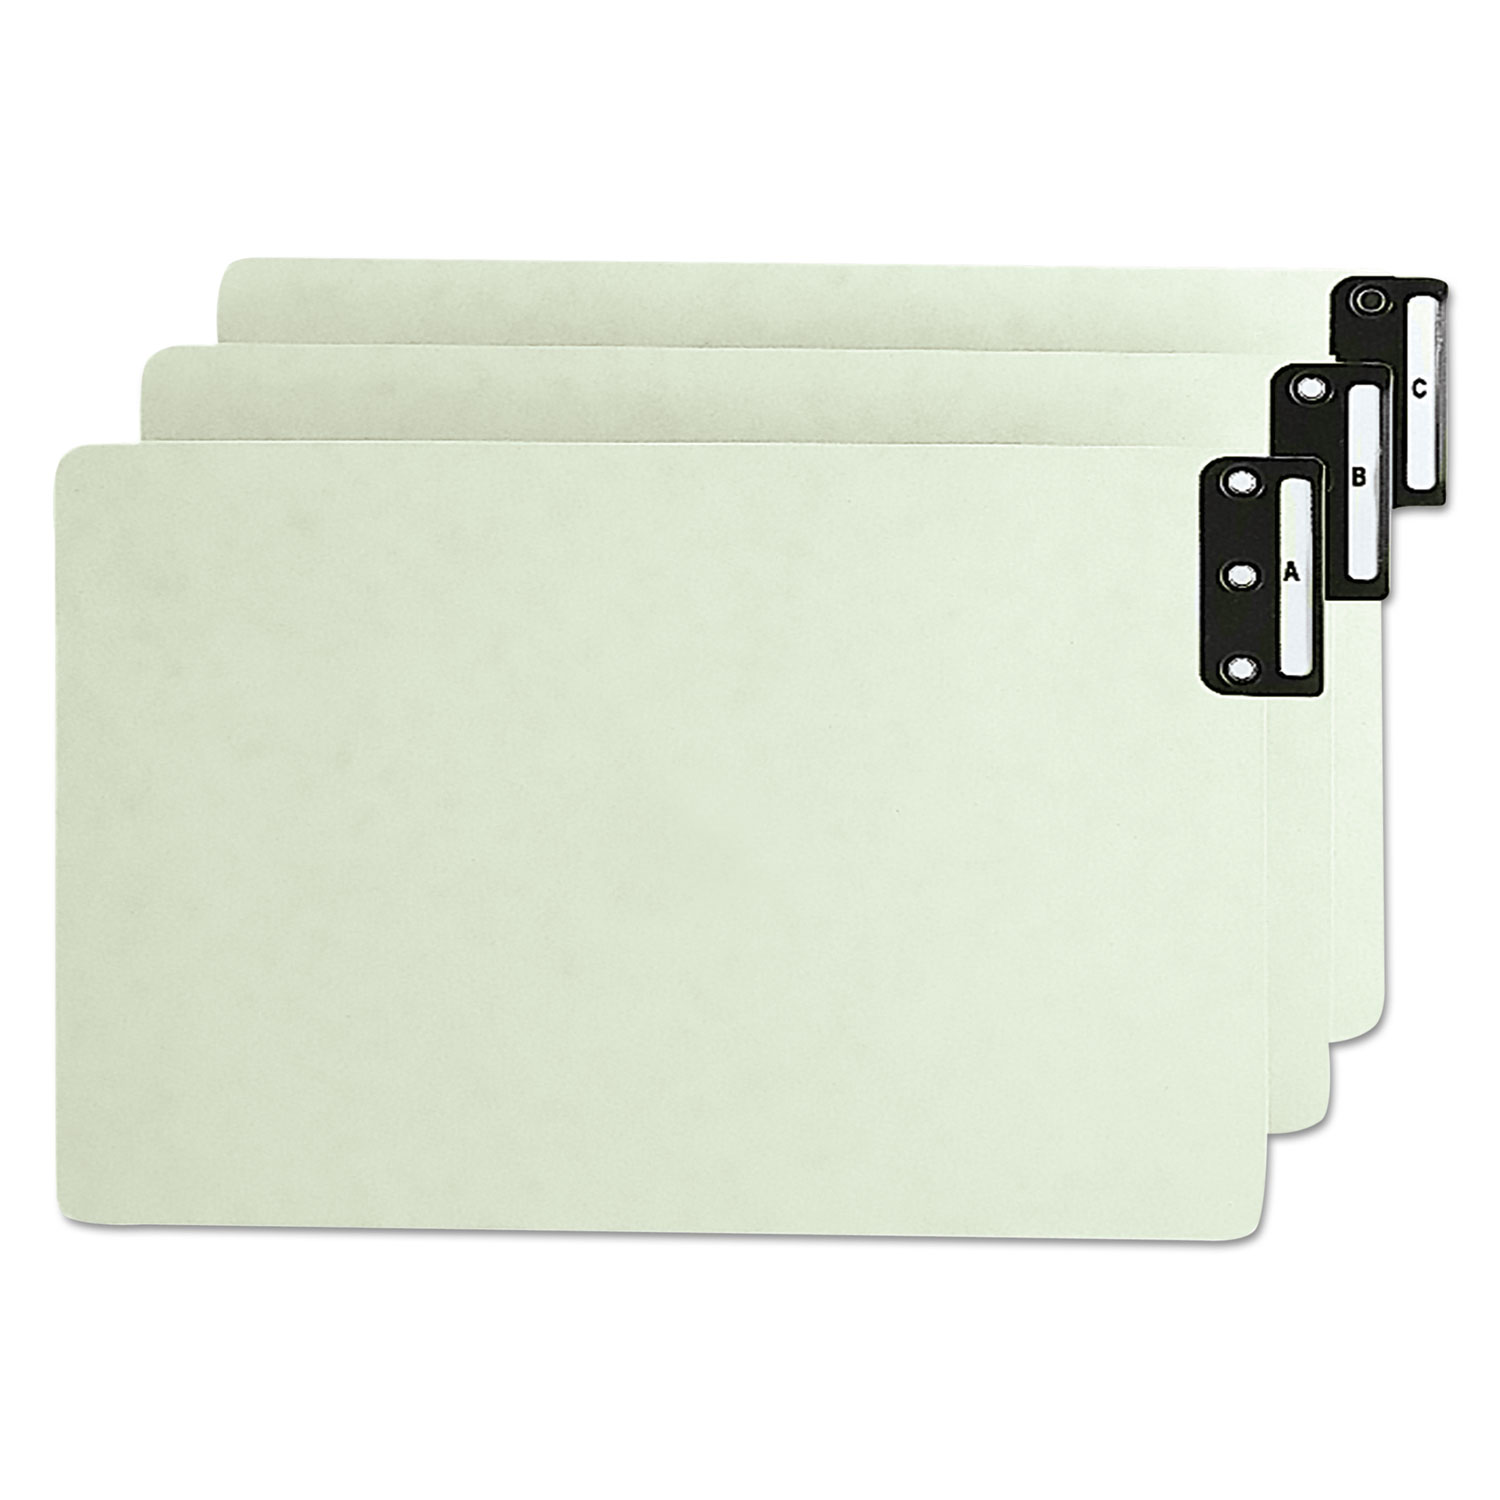 100% Recycled End Tab Pressboard Guides with Metal Tabs, 1/3-Cut End Tab, A to Z, 8.5 x 14, Green, 25/Set